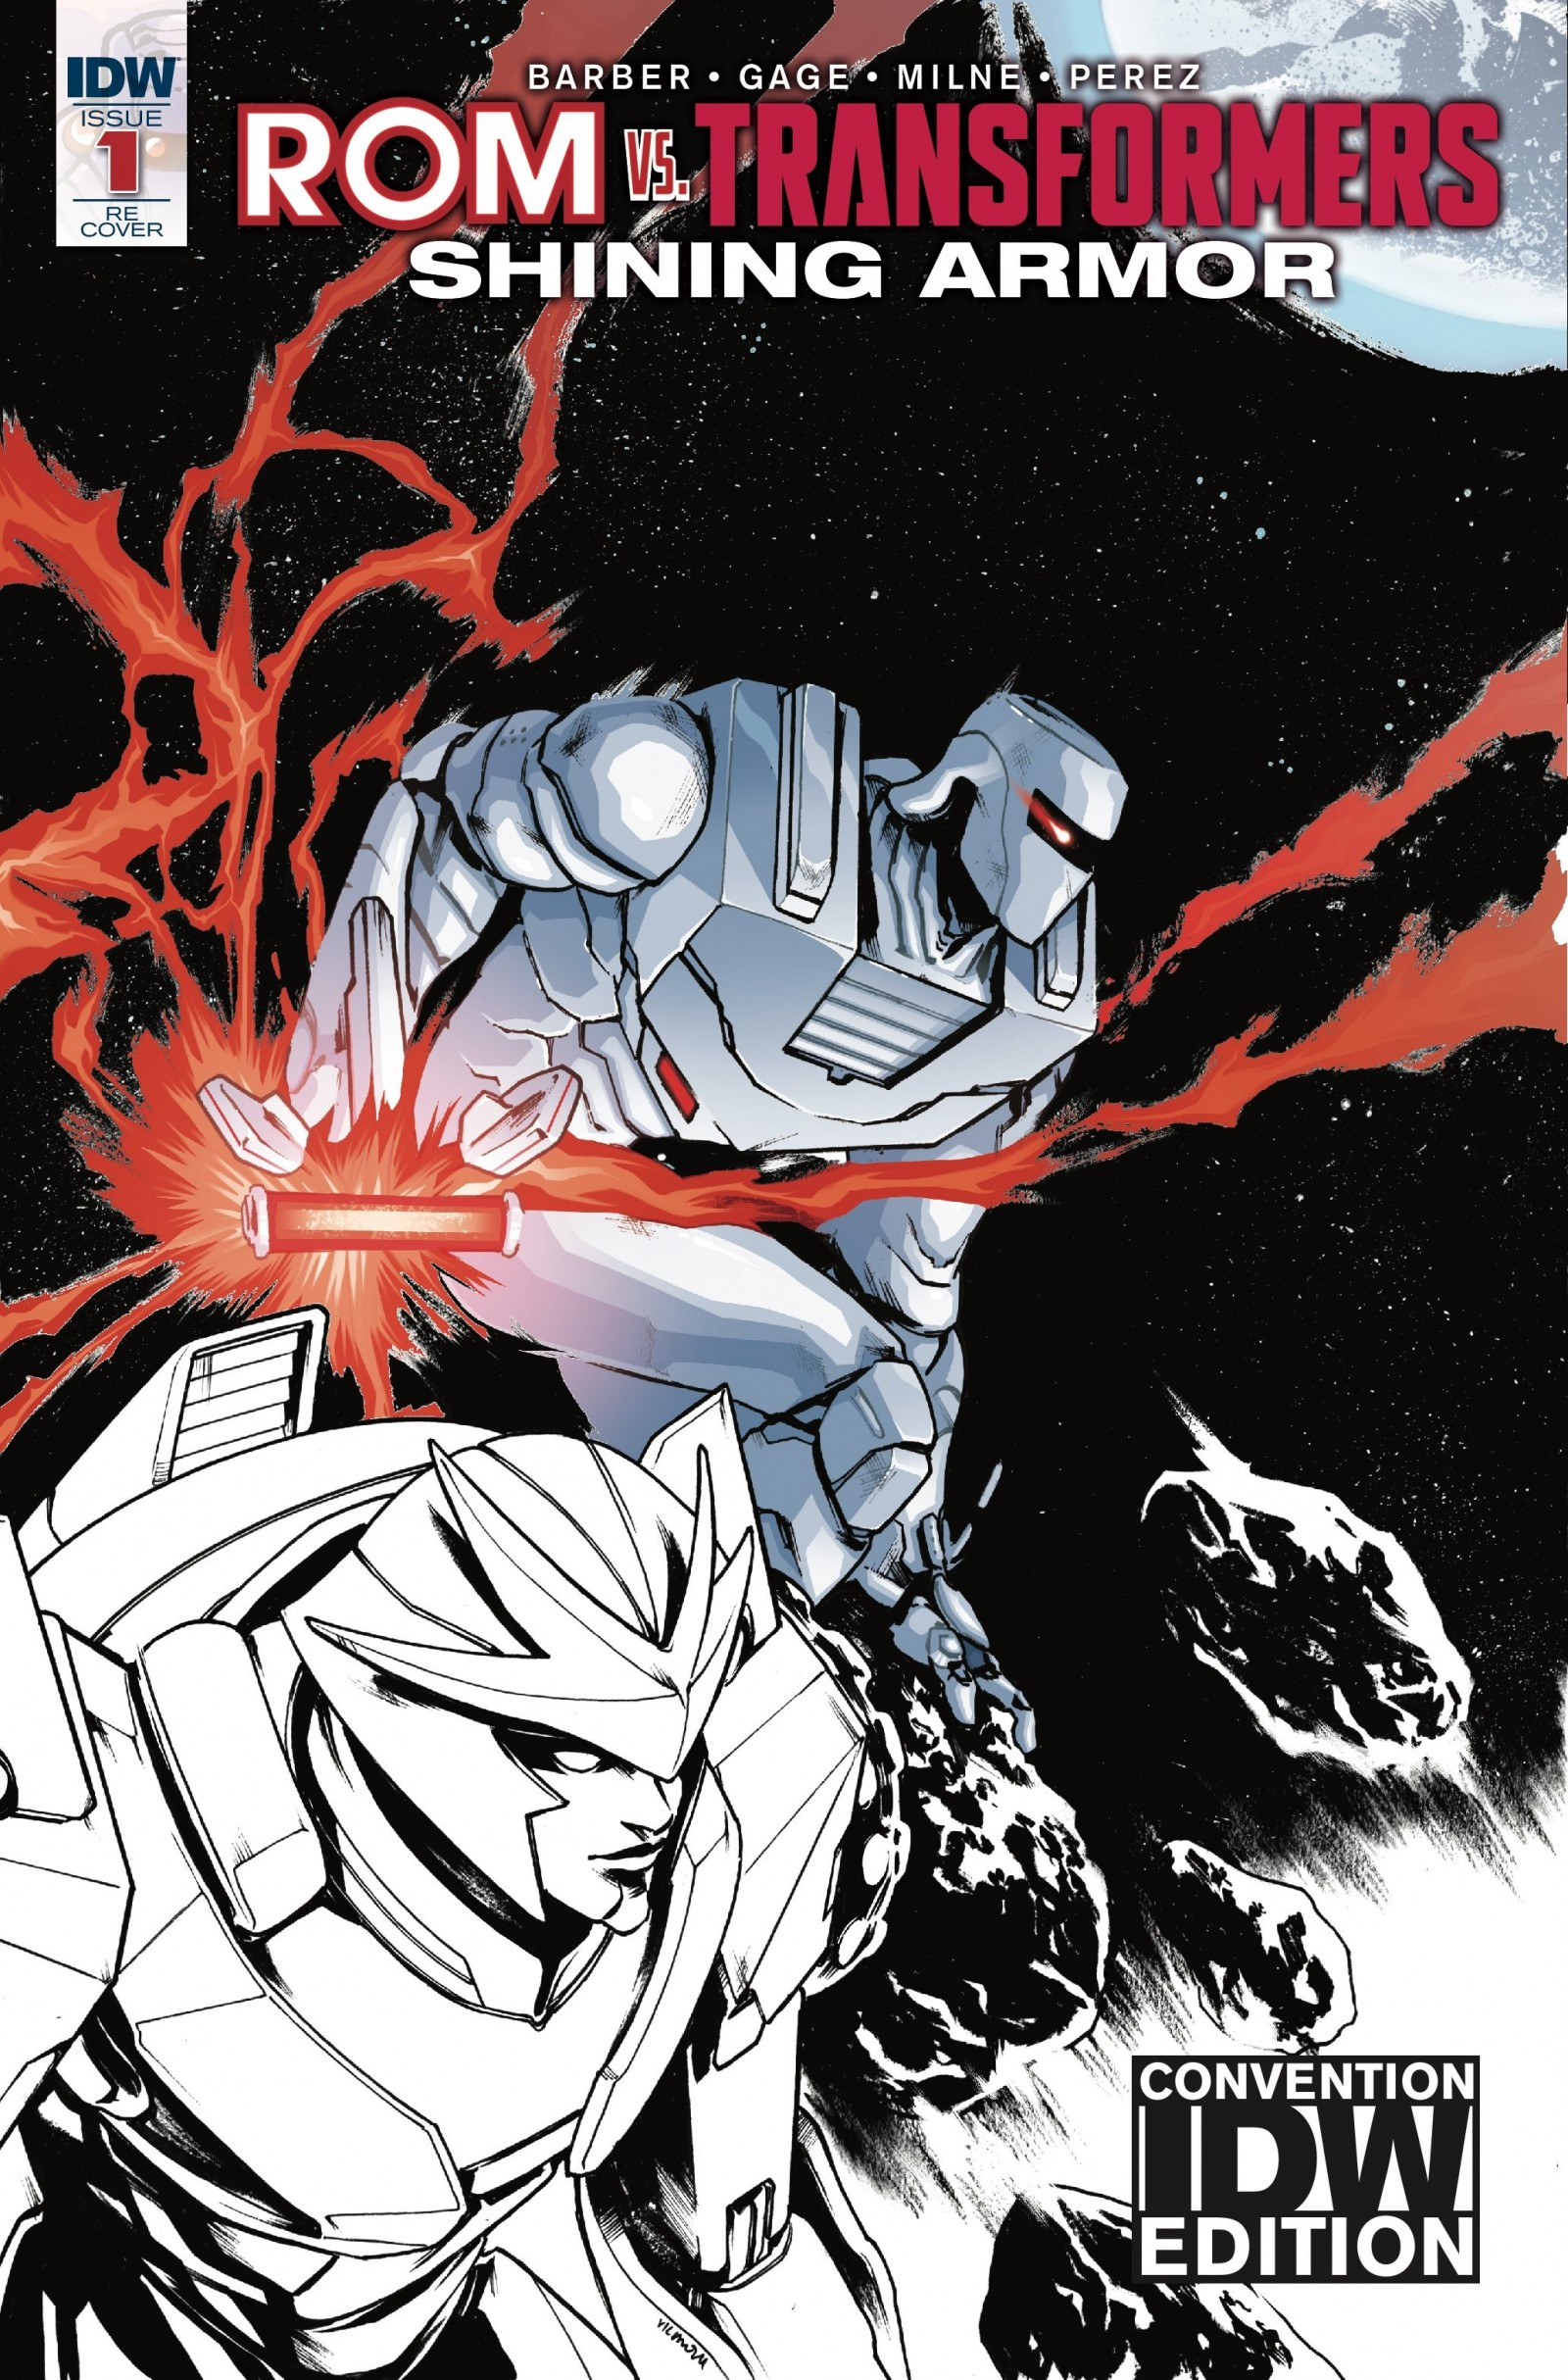 Transformers News: SDCC 2017 Exclusives & Debuts from IDW & Top Shelf, feat Rom vs Transformers